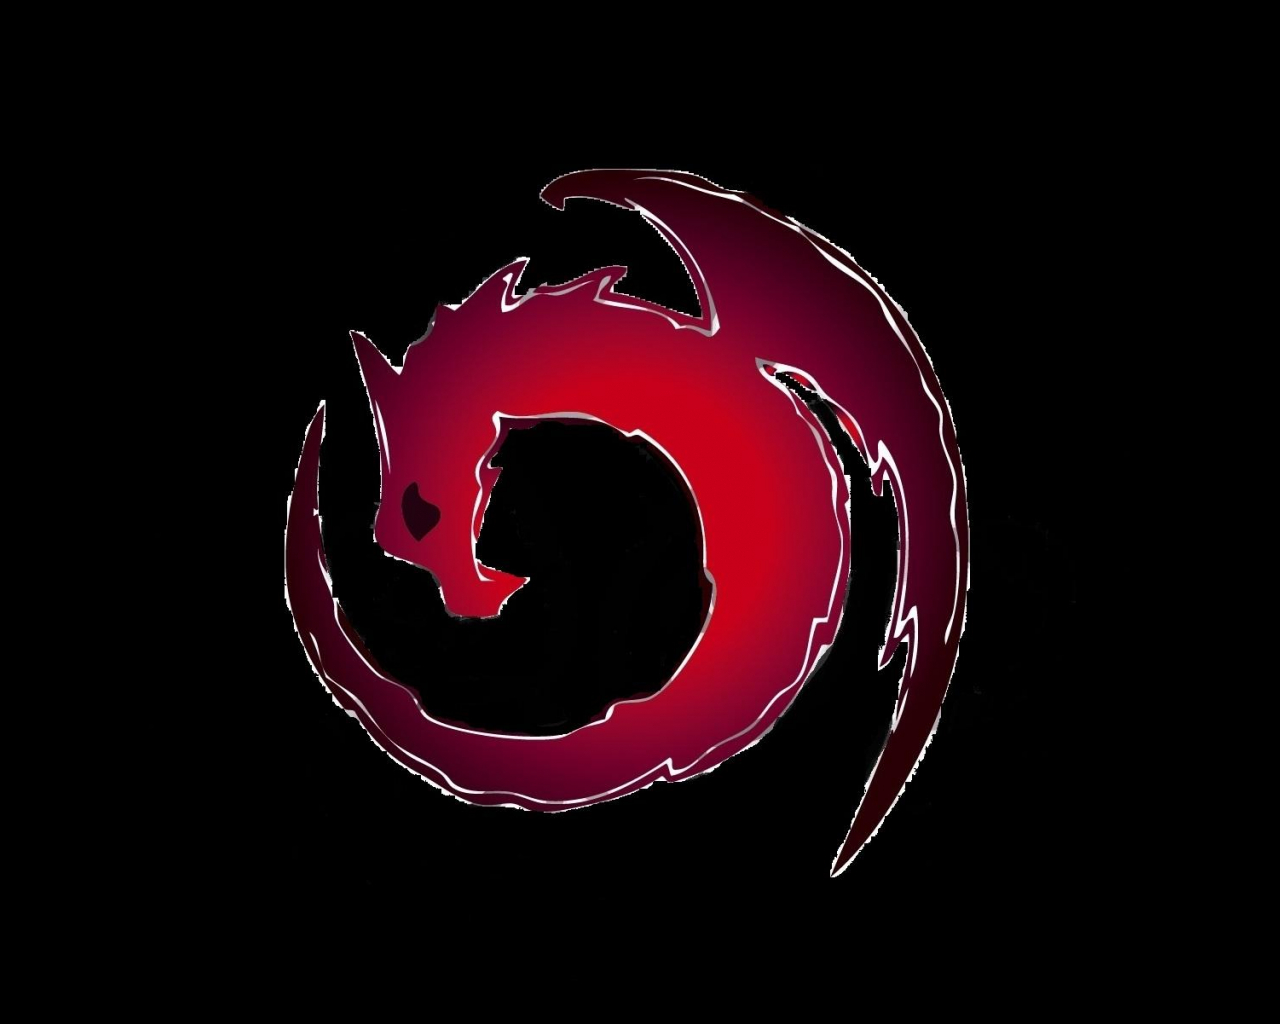 Free Download Red And Black Dragon Wallpaper Creative Red And